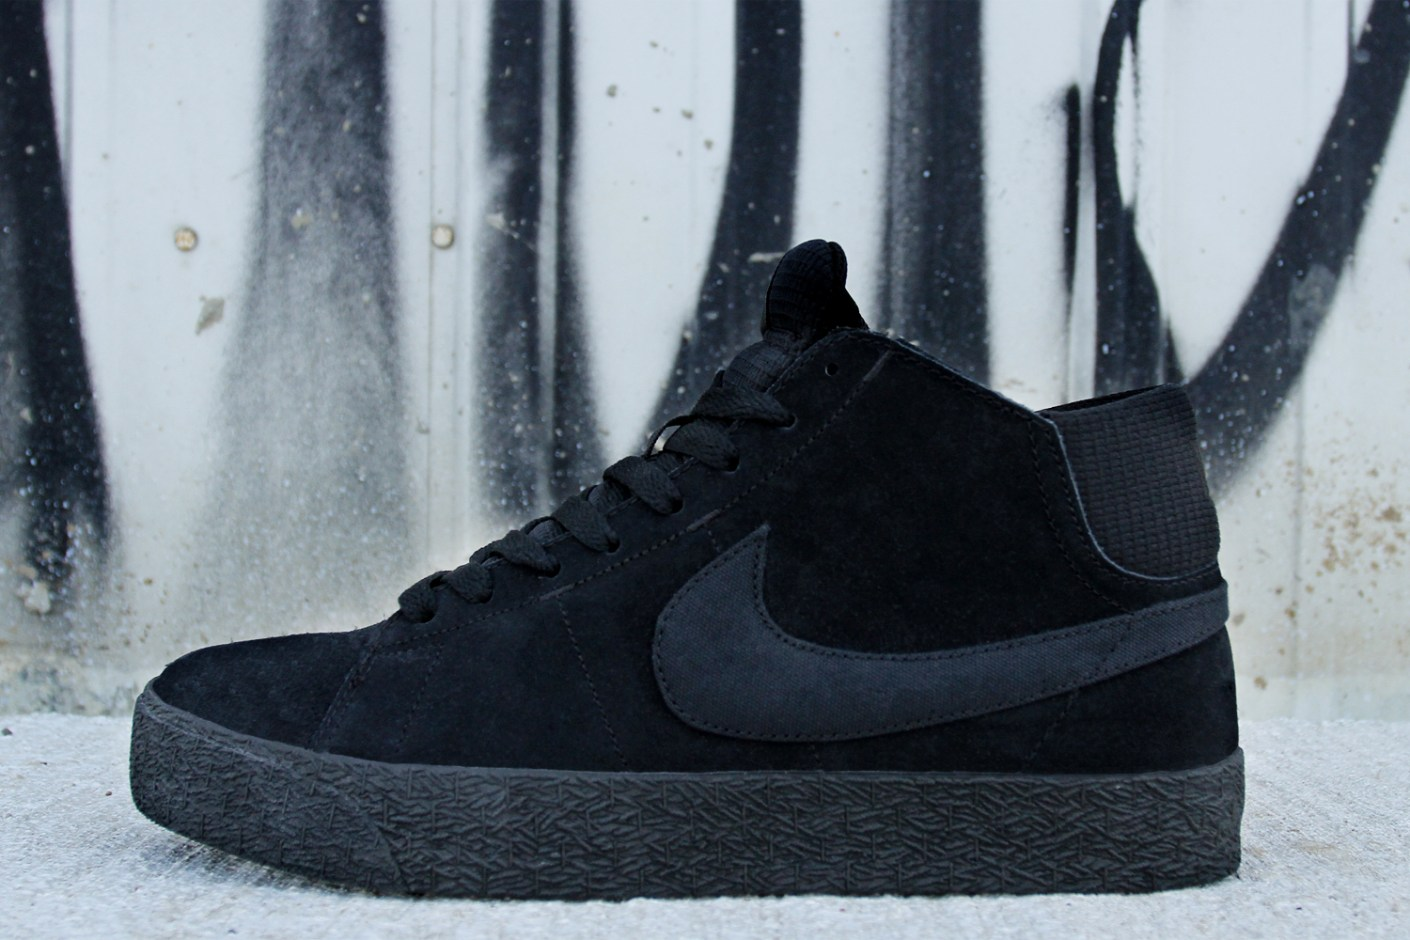 Image of Nike SB Blazer Mid LR Black/Dark Grey